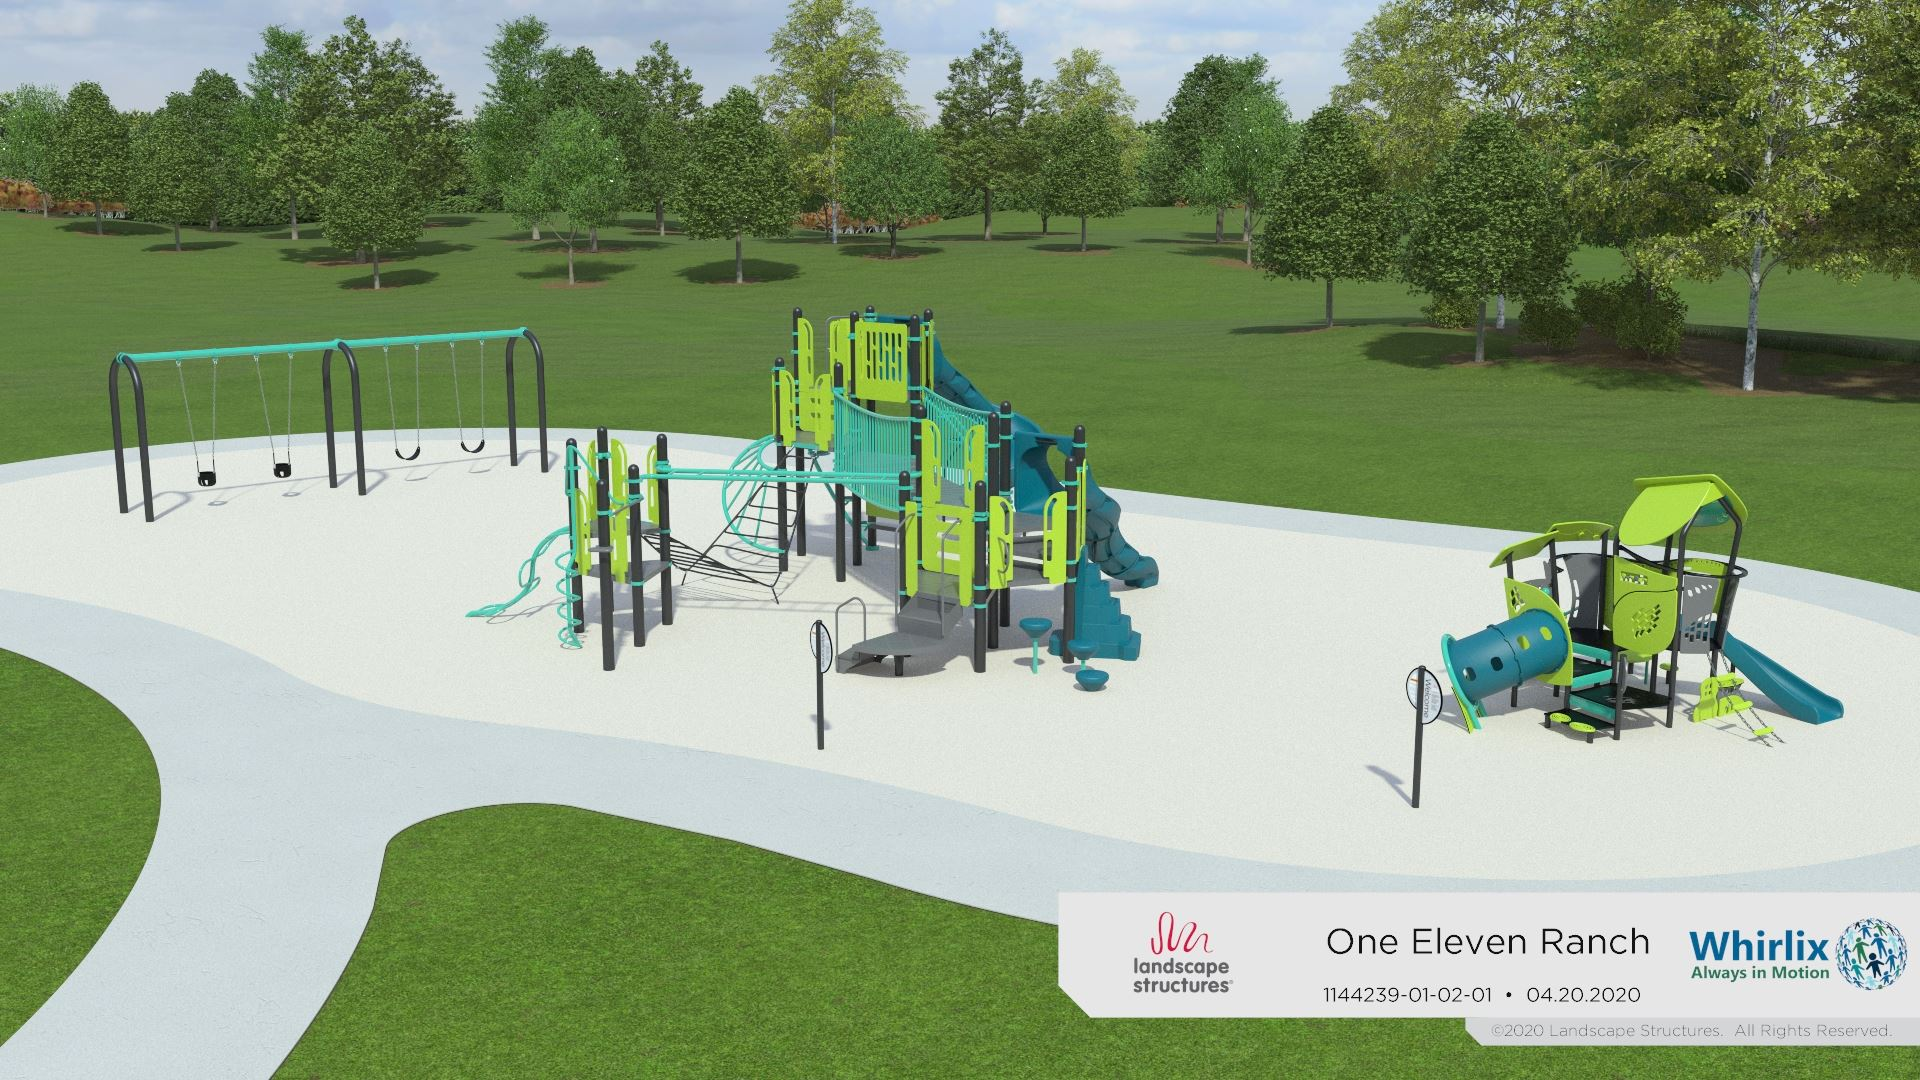 One Eleven Ranch Park Playground with swings and slides that are teal and neon yellow, the entrance